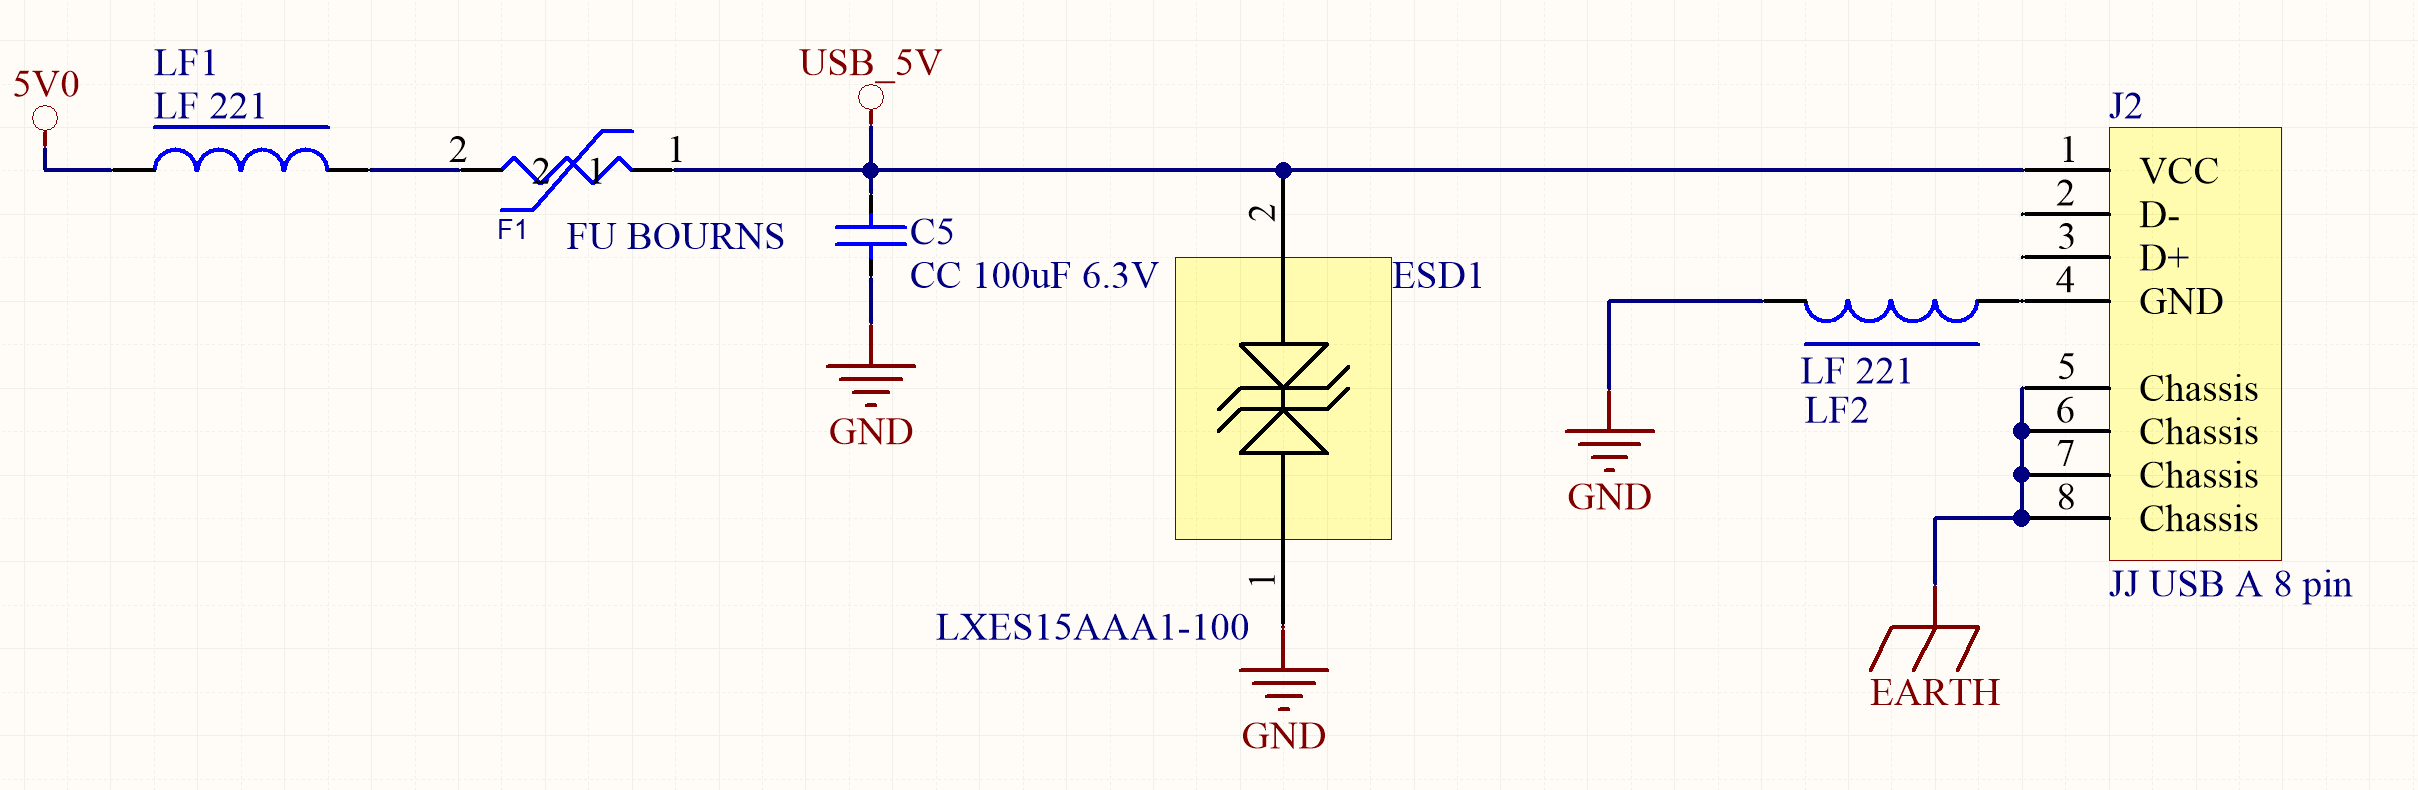 How to design the power supply circuitry  V Power Supply Schematic on switching power supply schematic, 48v power supply schematic, pc power supply schematic, 28v power supply schematic, bench power supply schematic, 3.9v power supply schematic, atx power supply schematic, tattoo power supply schematic, 5v power supply schematic, linear power supply schematic, variable dc power supply schematic, high voltage power supply schematic, 15v power supply schematic, 18v power supply schematic, high current power supply schematic, led power supply schematic, 10 amp power supply schematic, 24vdc power supply schematic, 13.8v power supply schematic, 30a power supply schematic,